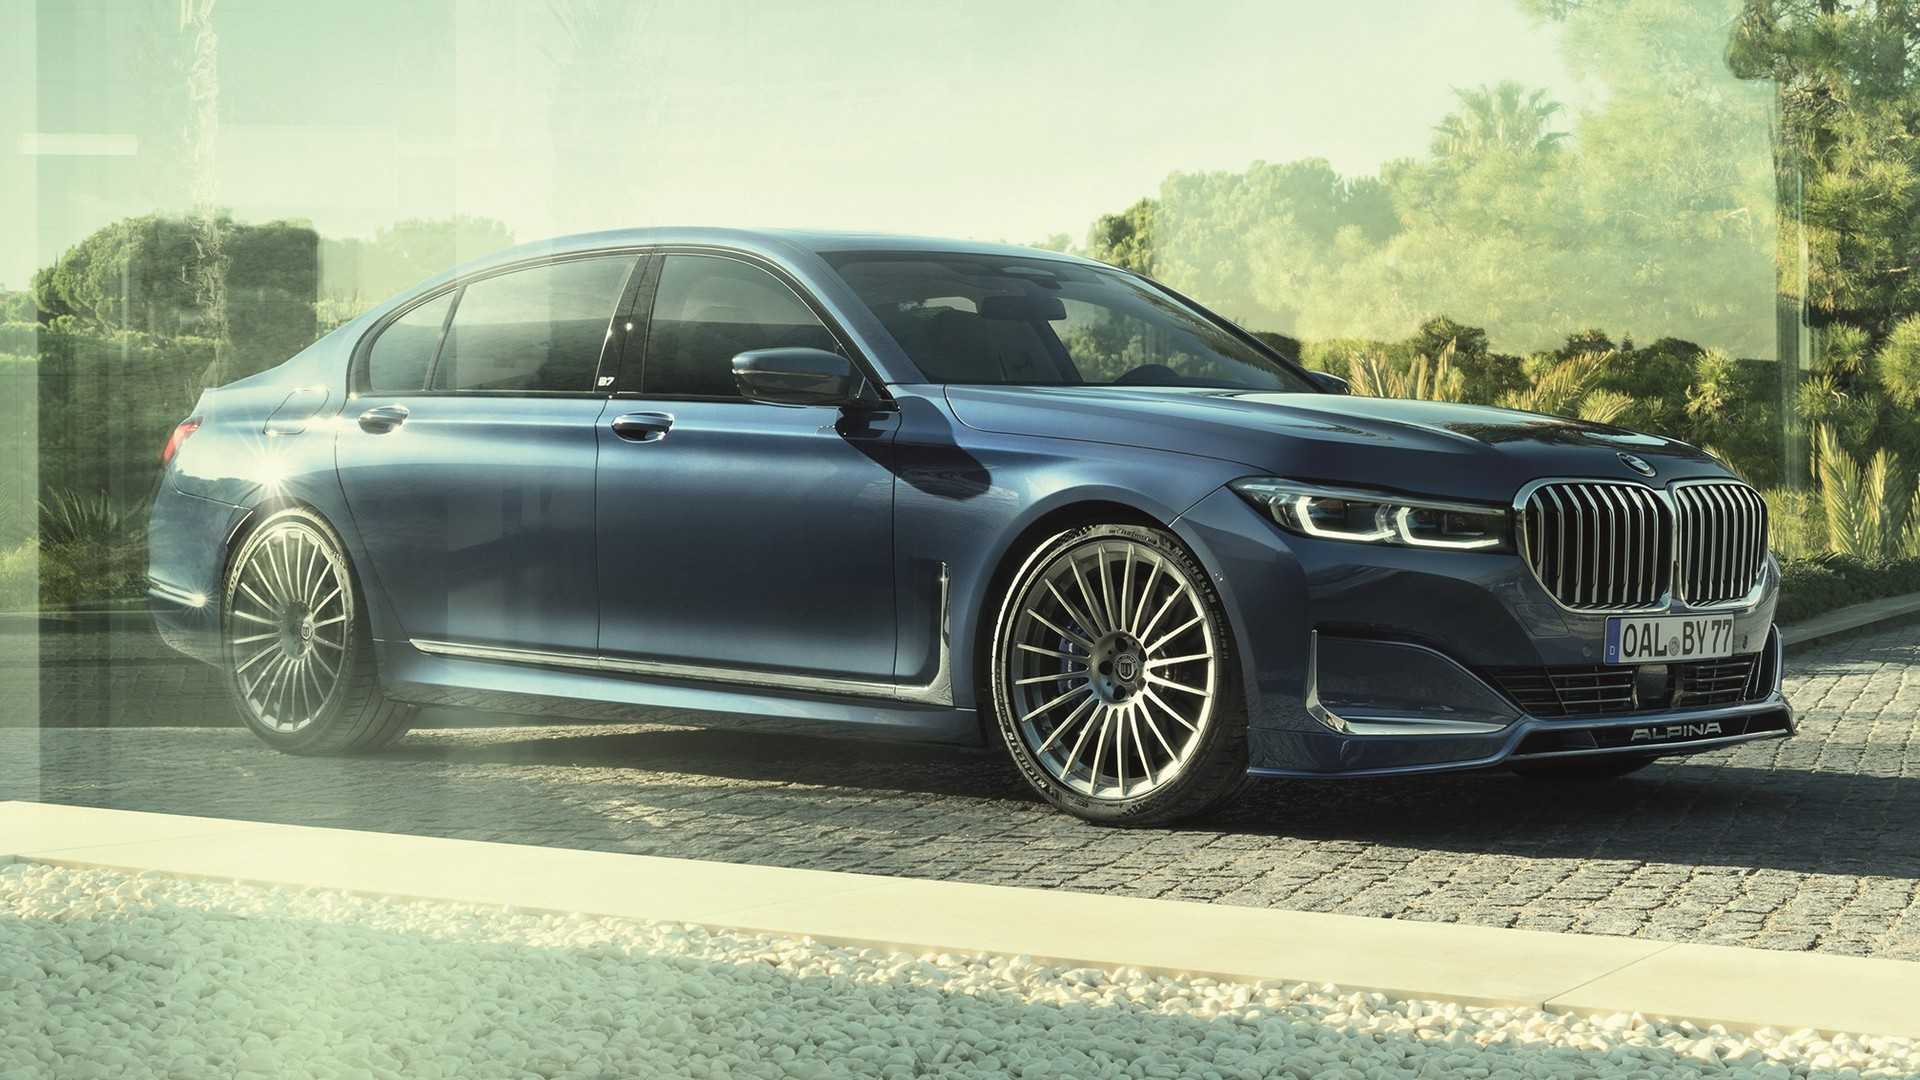 2020 Alpina B7 Oozes Class Even With The Gargantuan Grille 1920x1080